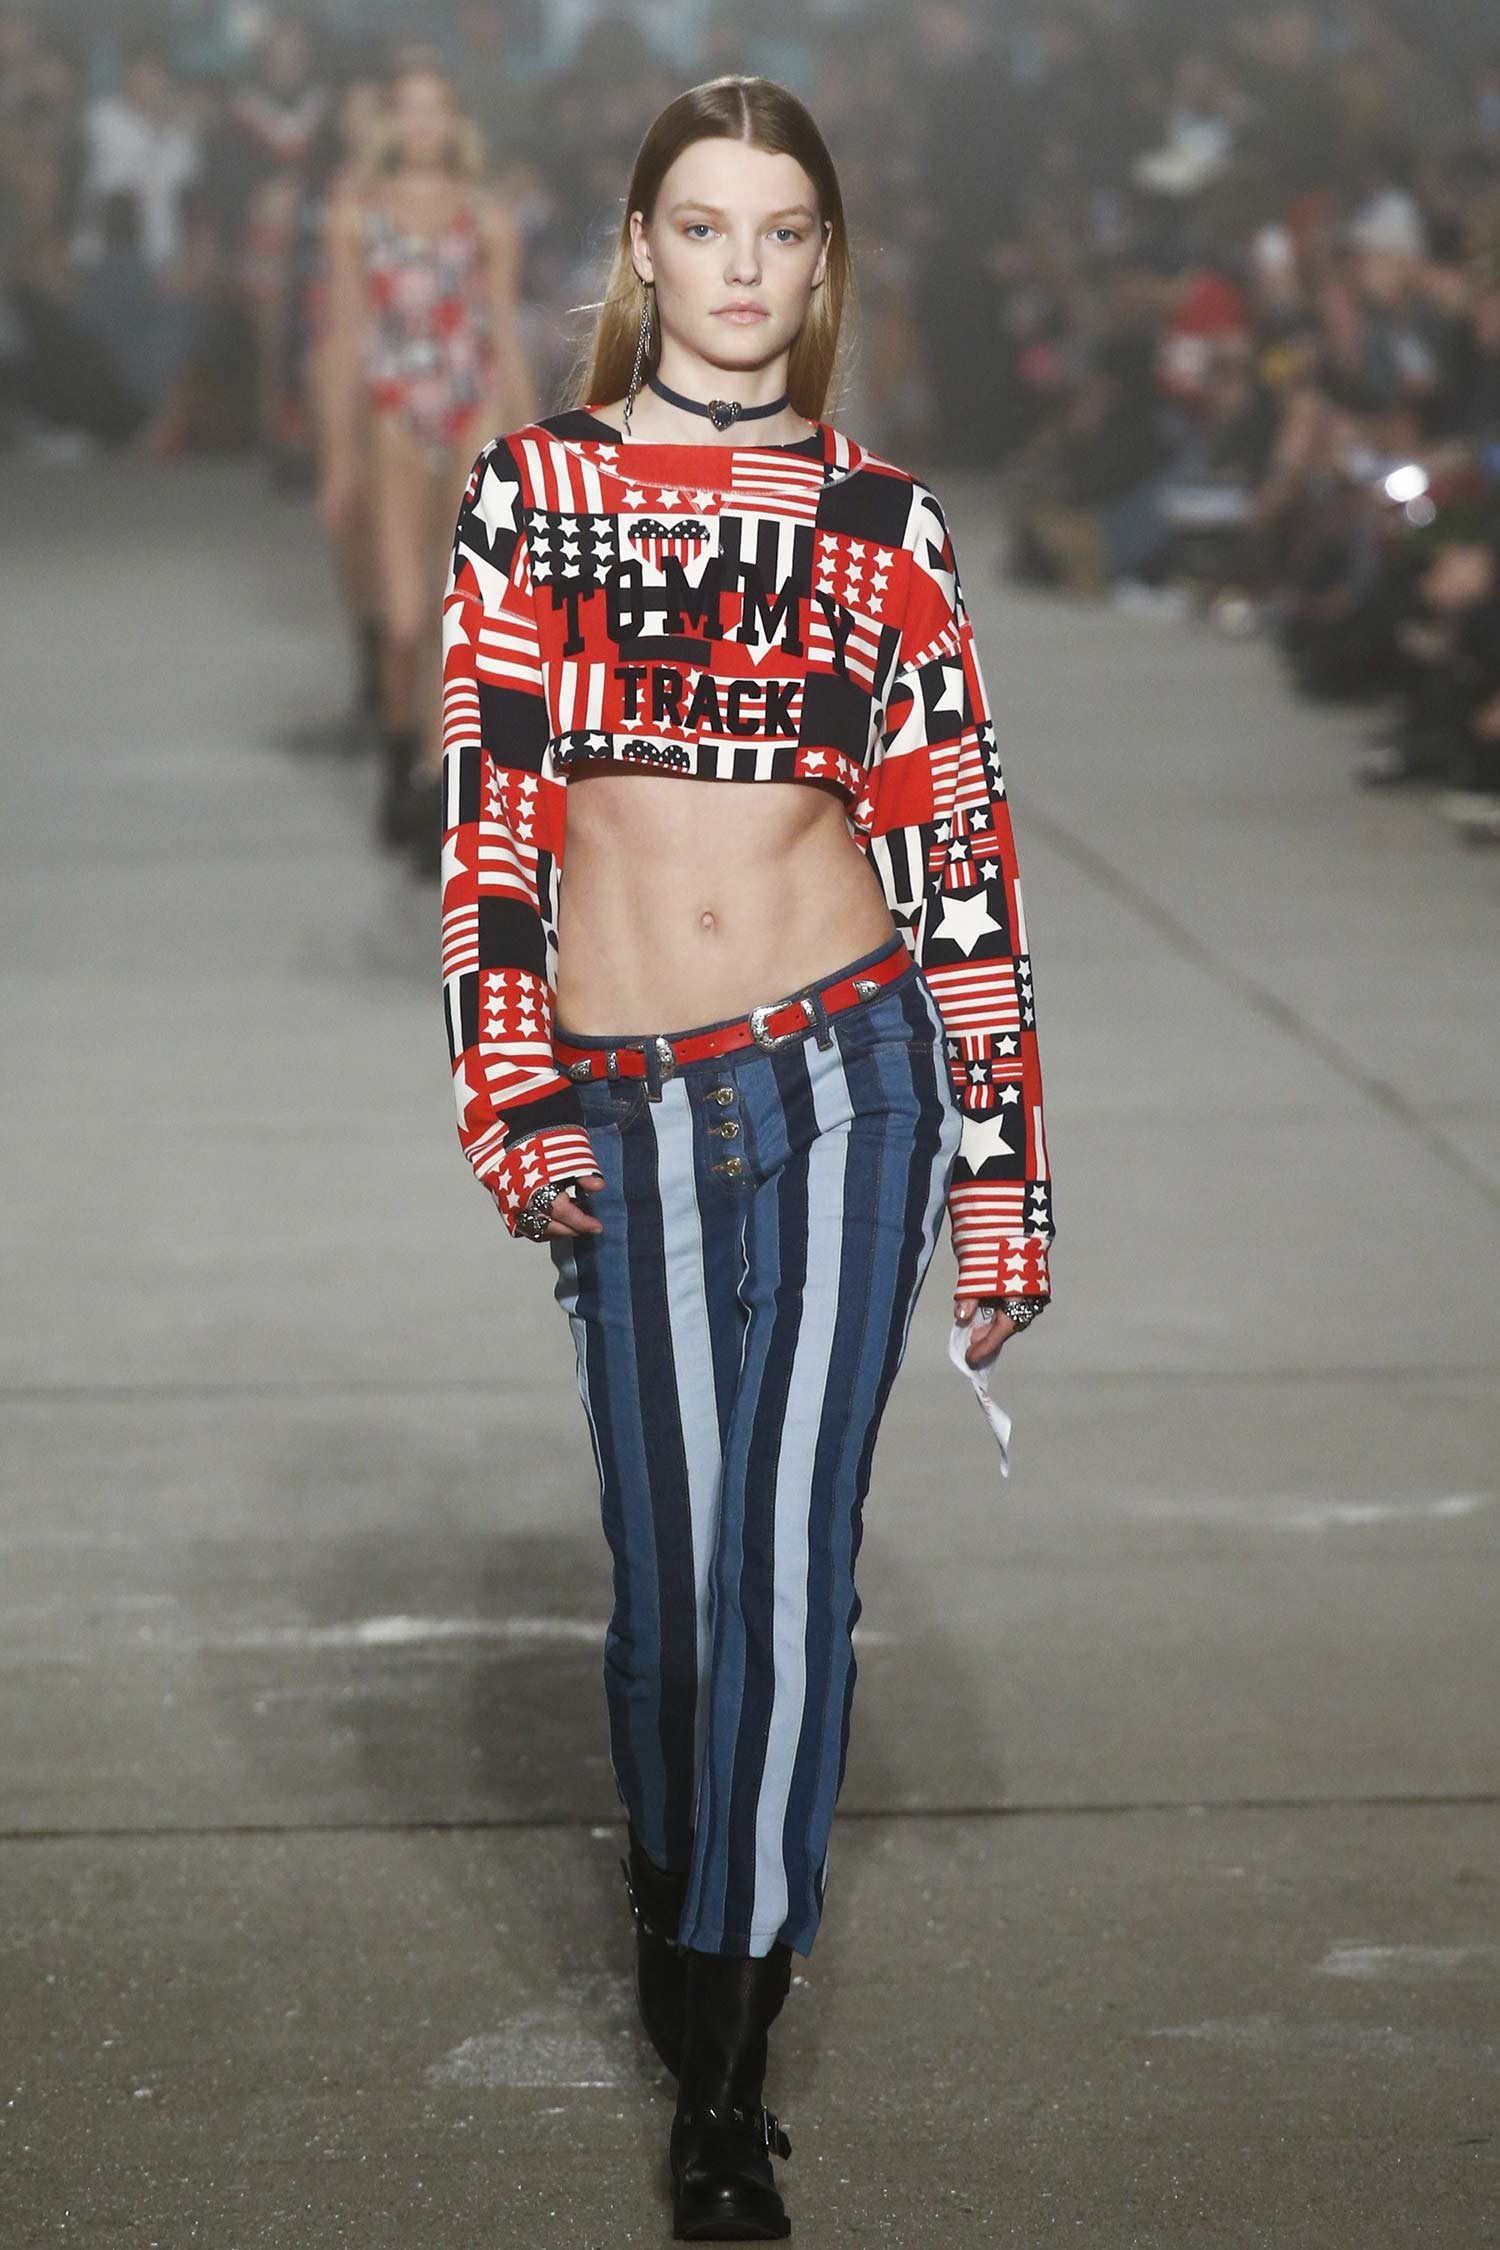 Hilfiger tommy spring runway review catalog photo